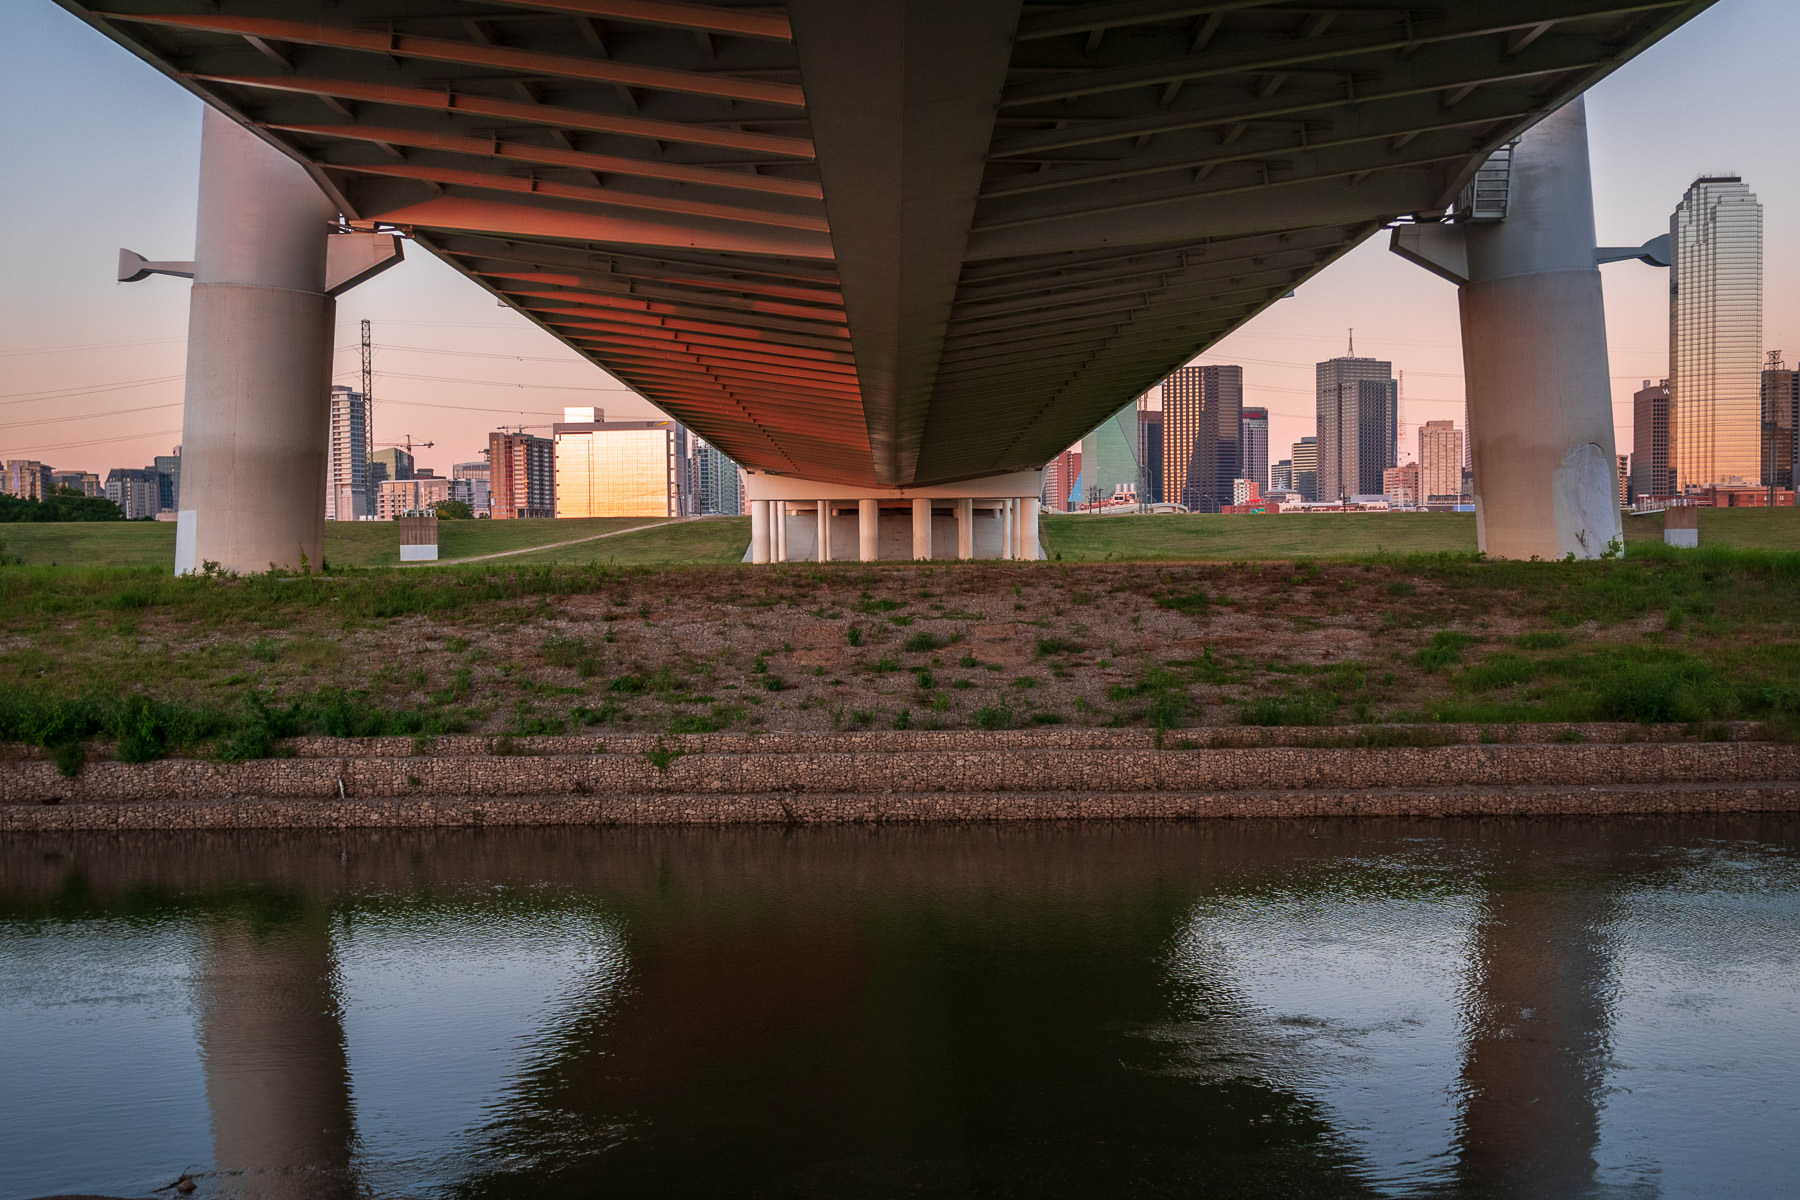 The Margaret Hunt Hill Bridge reaches over the Trinity River towards Downtown Dallas.